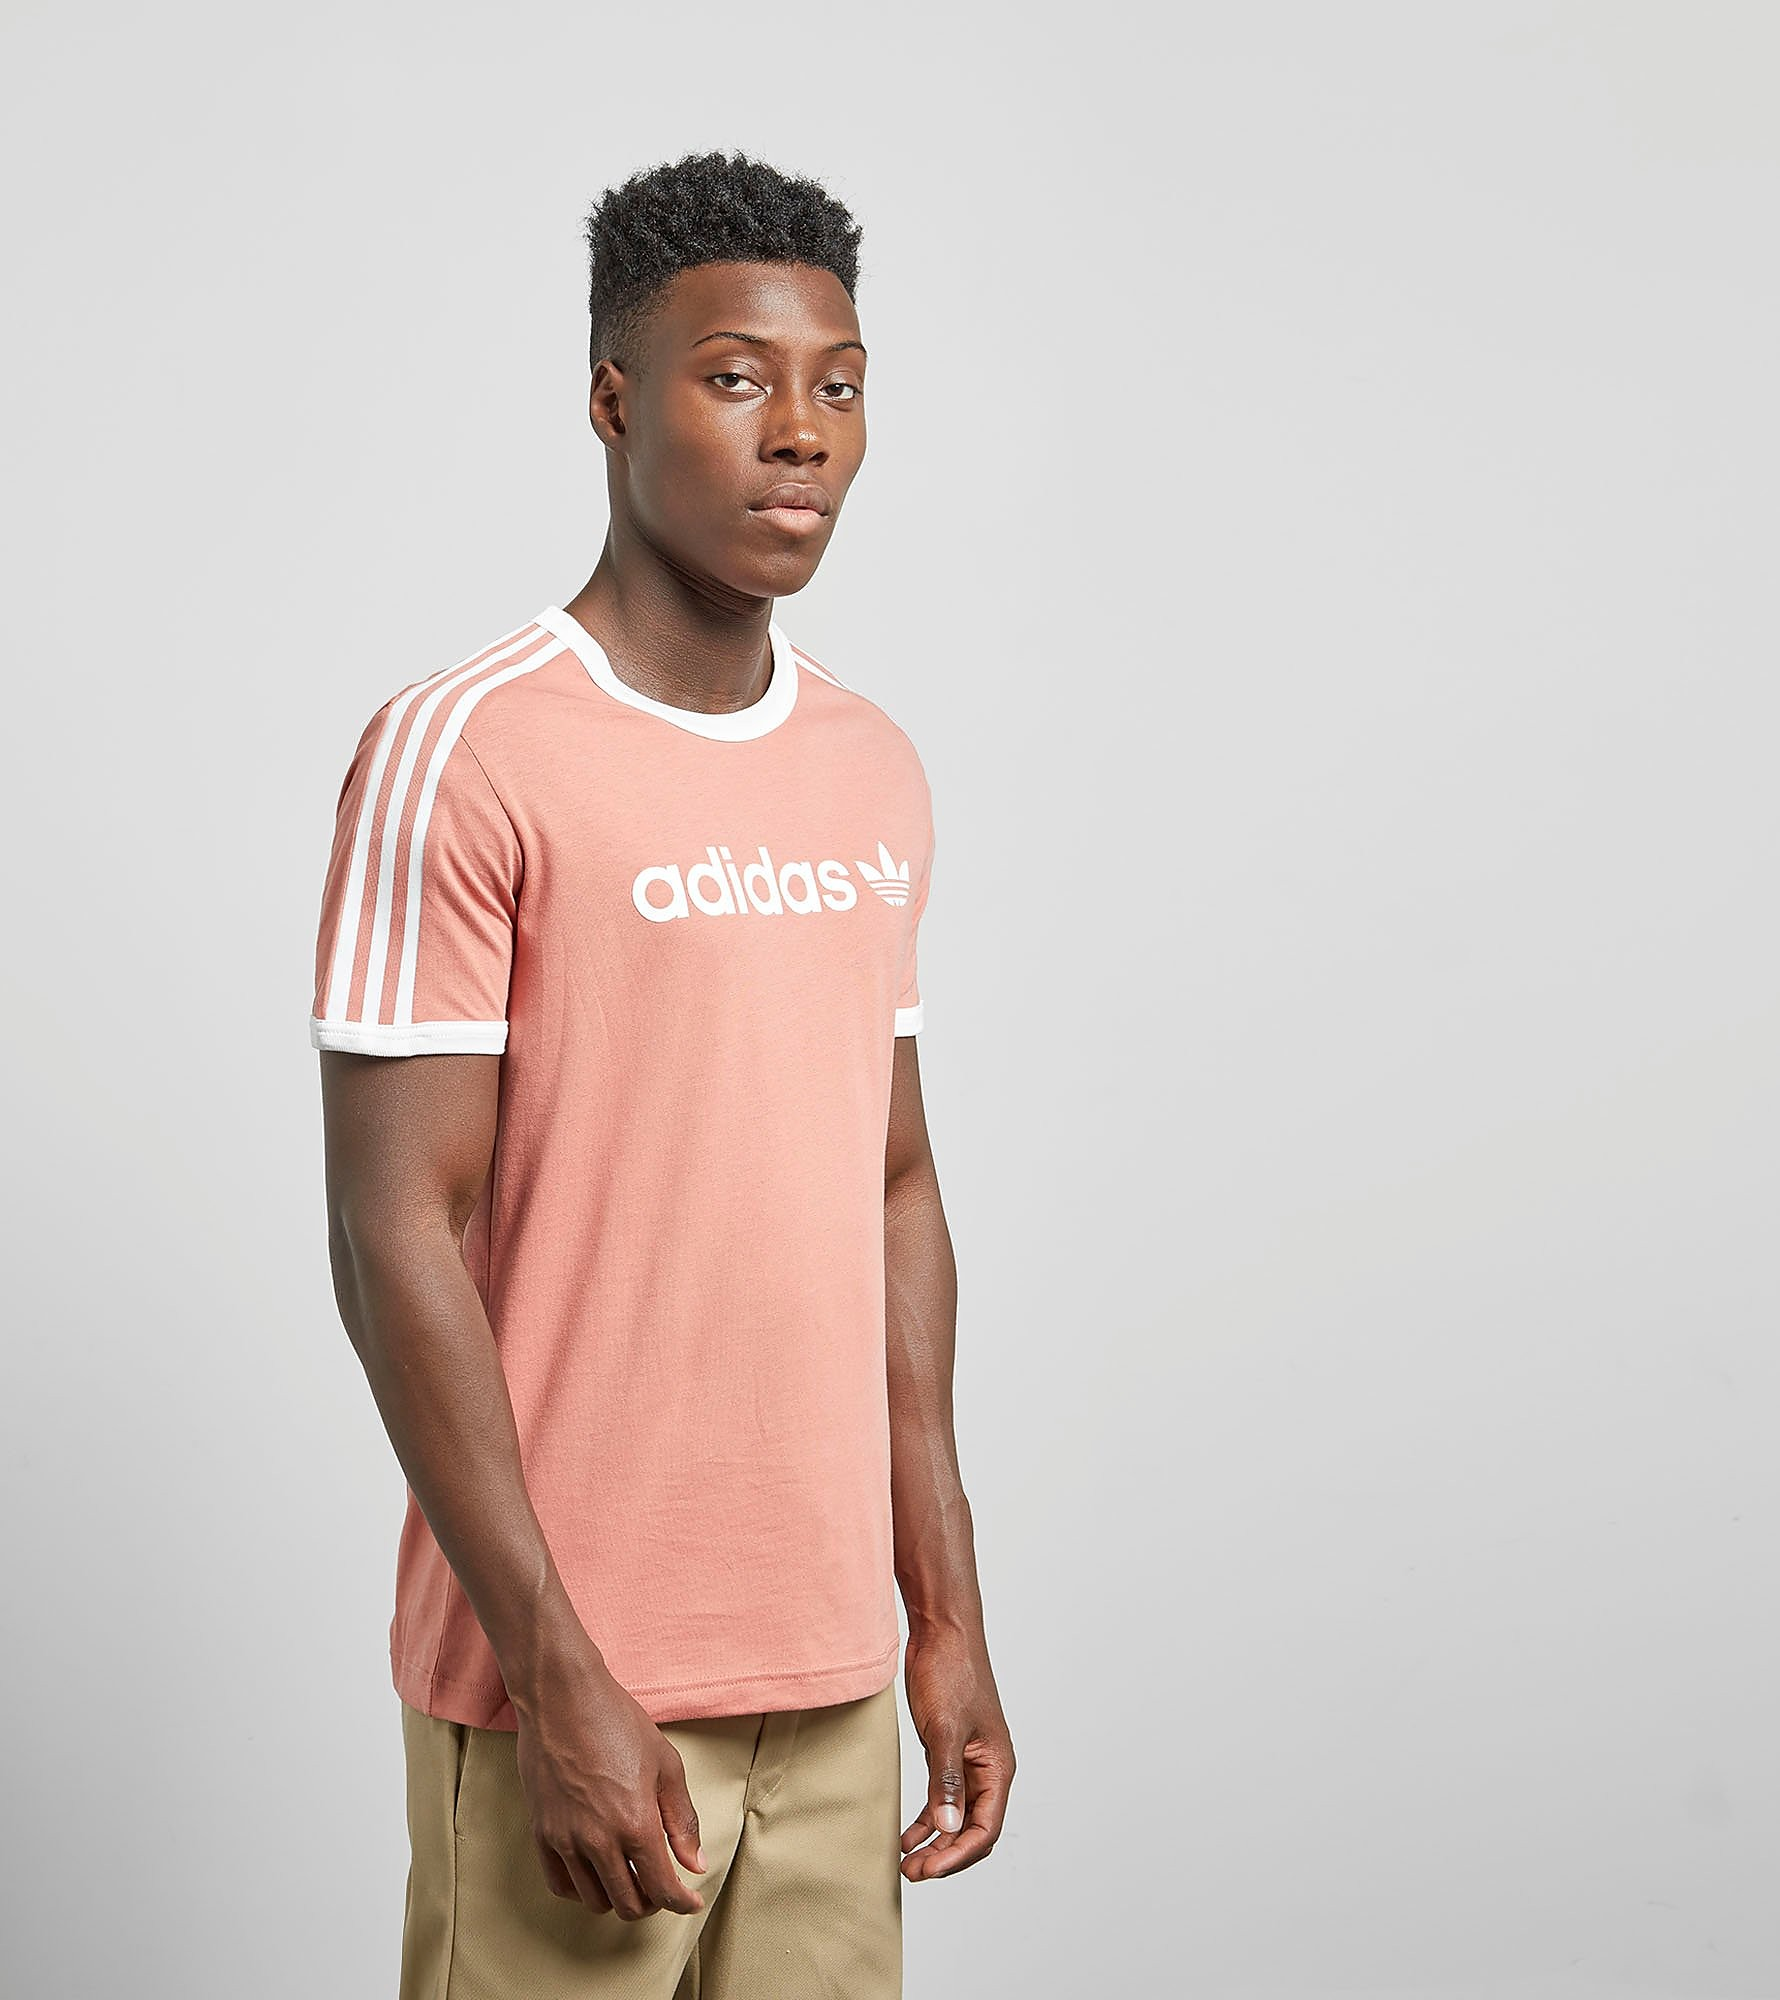 adidas Originals Linear T-Shirt - size? Exclusive